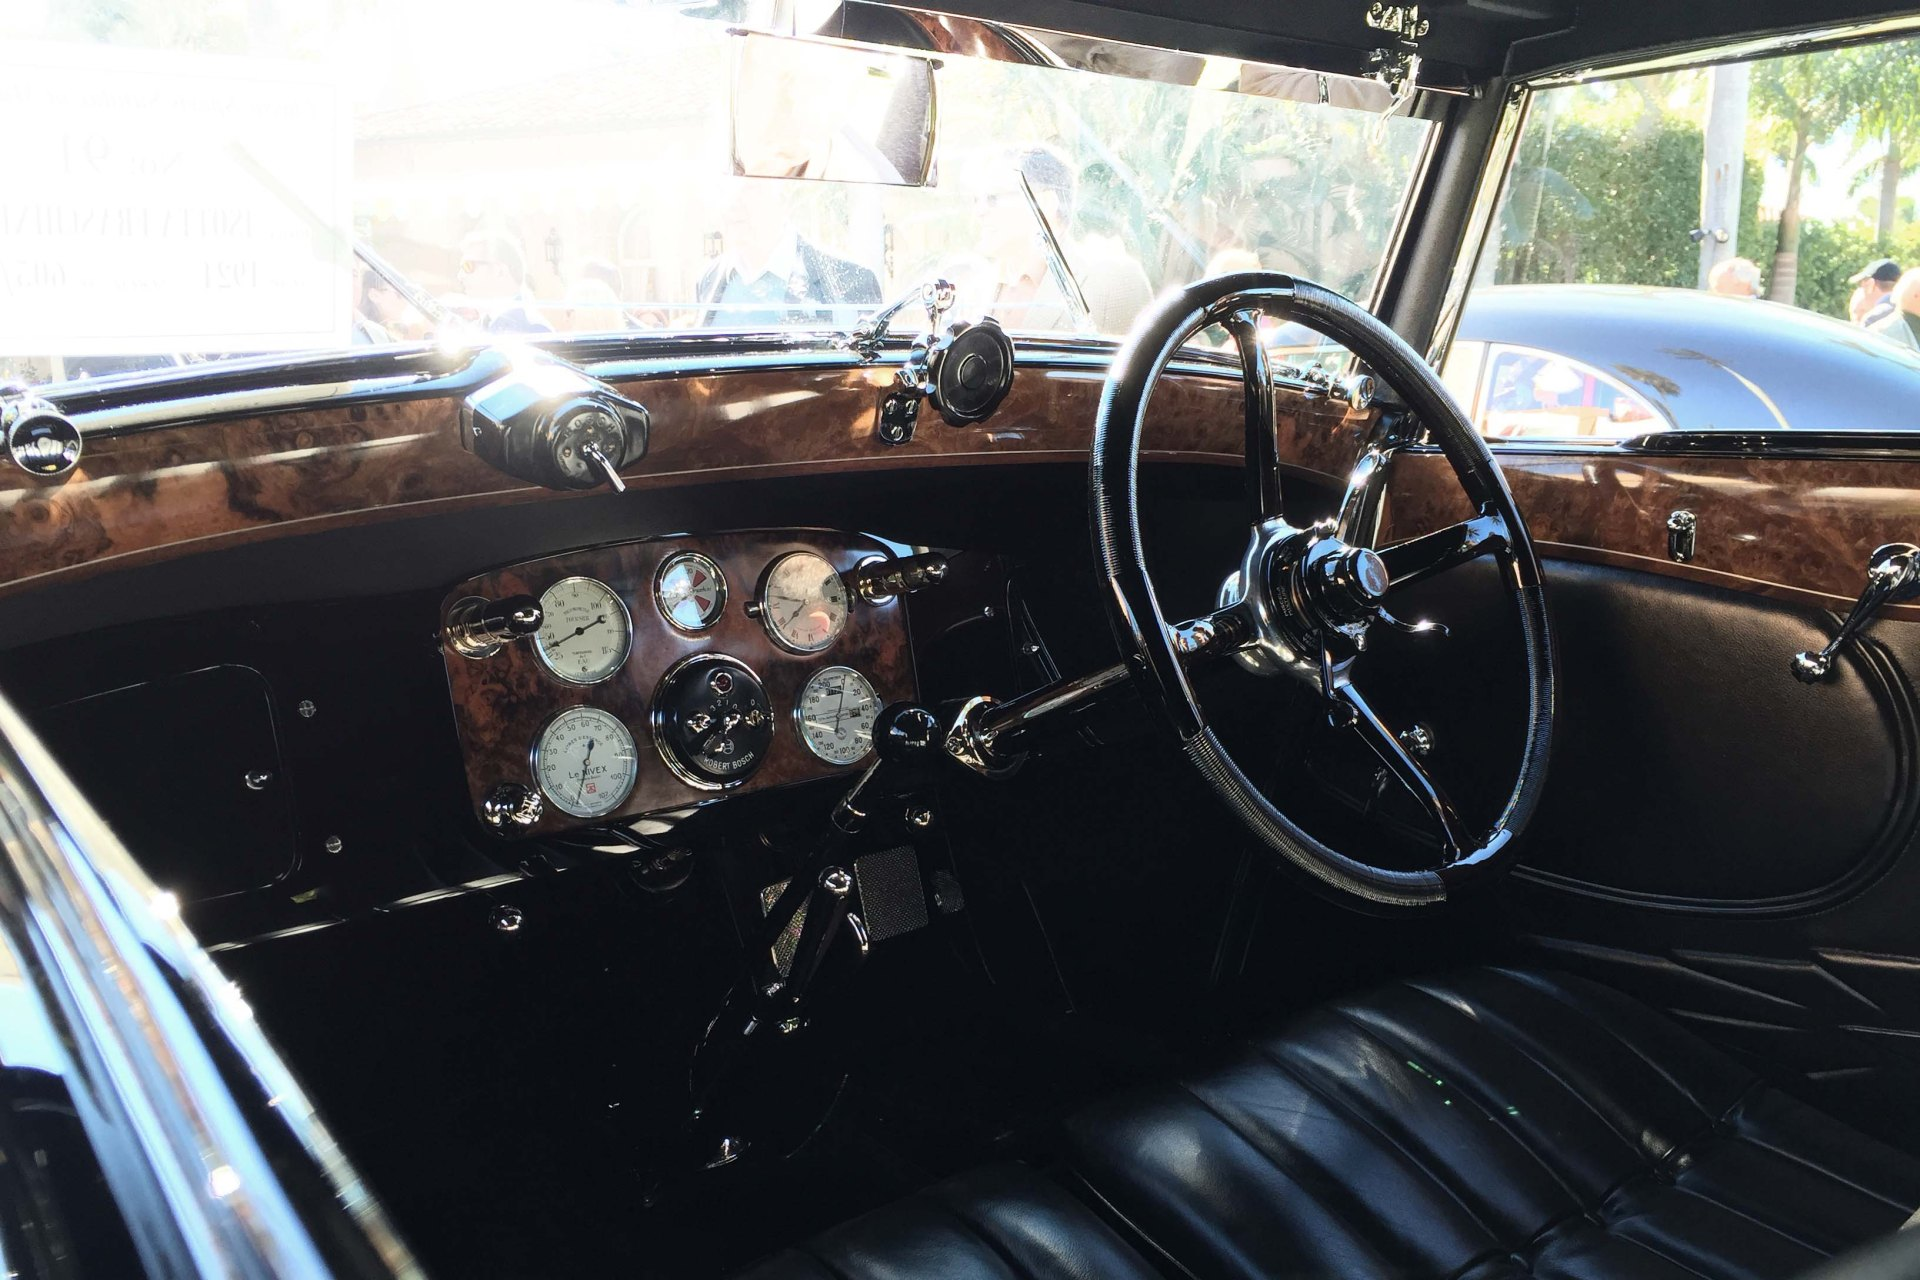 Interior of the 1924 Isotta Fraschini Tipo 8A Cabriolet. Photo by Bradley Price.